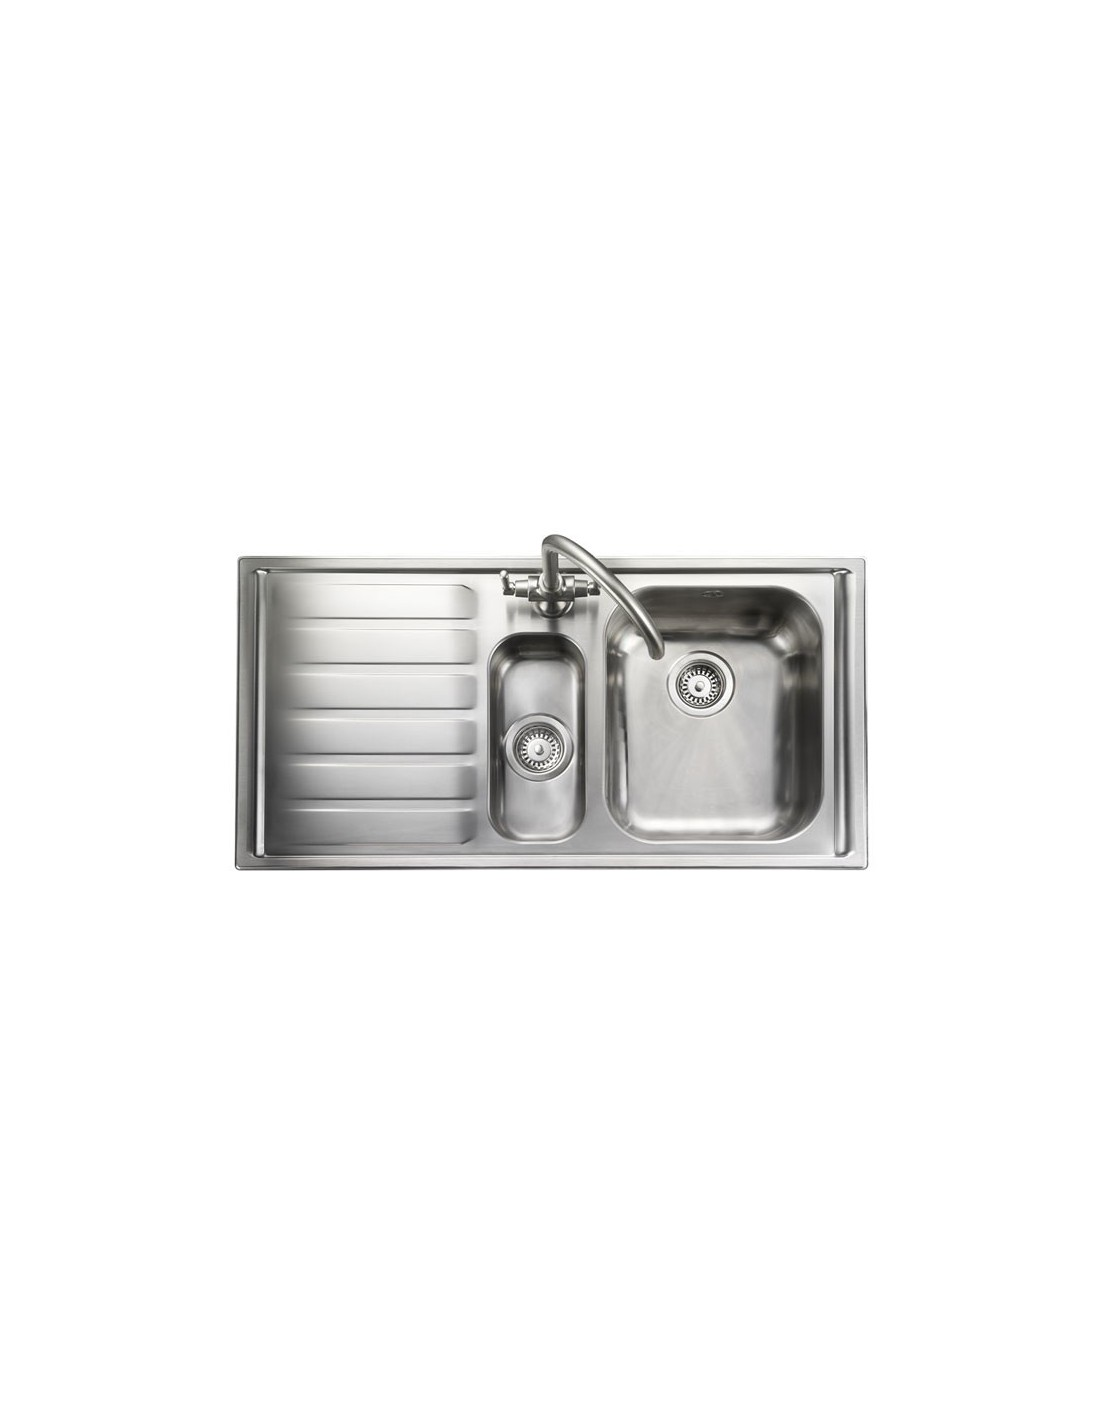 rangemaster mn10101 manhattan stainless steel 101520 sink waste - Kitchen Sink Wastes